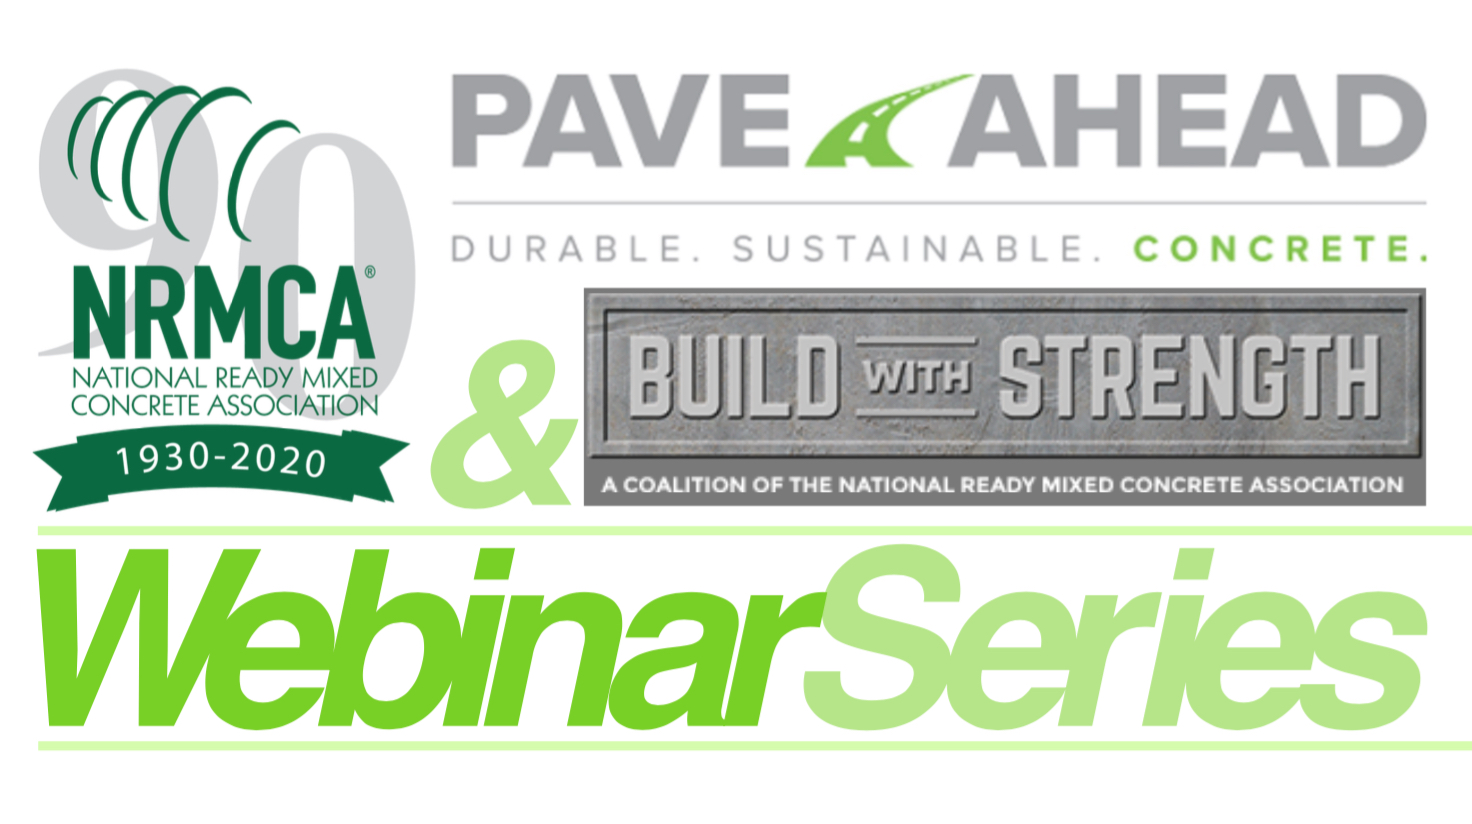 Nrcma Series Of Concrete Paving Webinars 11 To Be Held April May International Society For Concrete Pavements